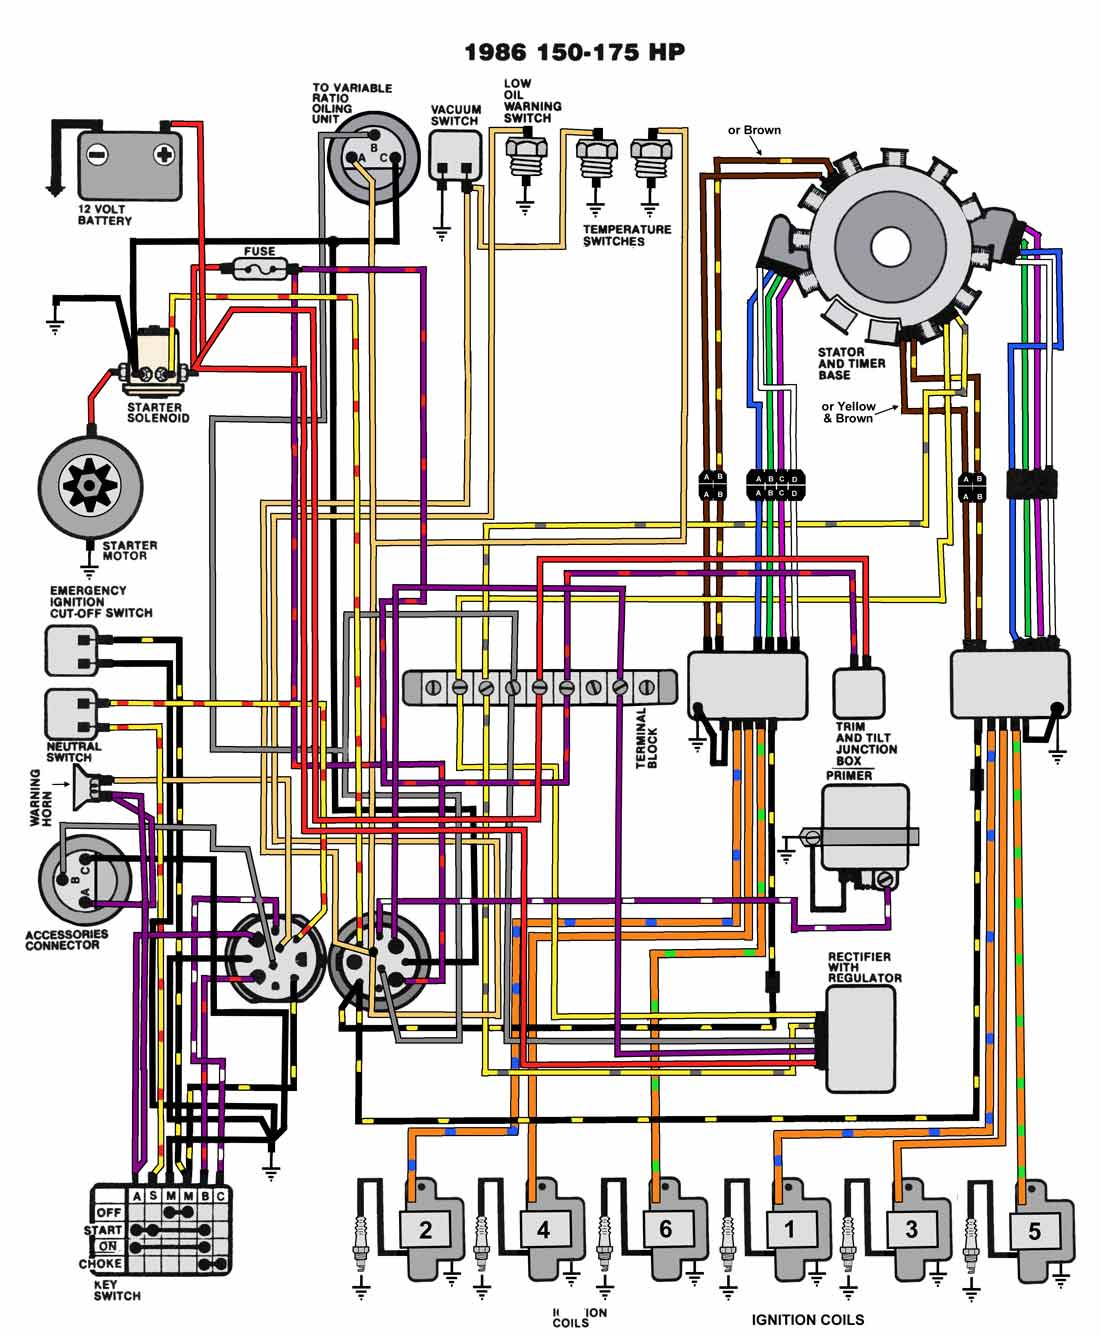 1986_150_175 mastertech marine evinrude johnson outboard wiring diagrams evinrude key switch wiring diagram at gsmportal.co